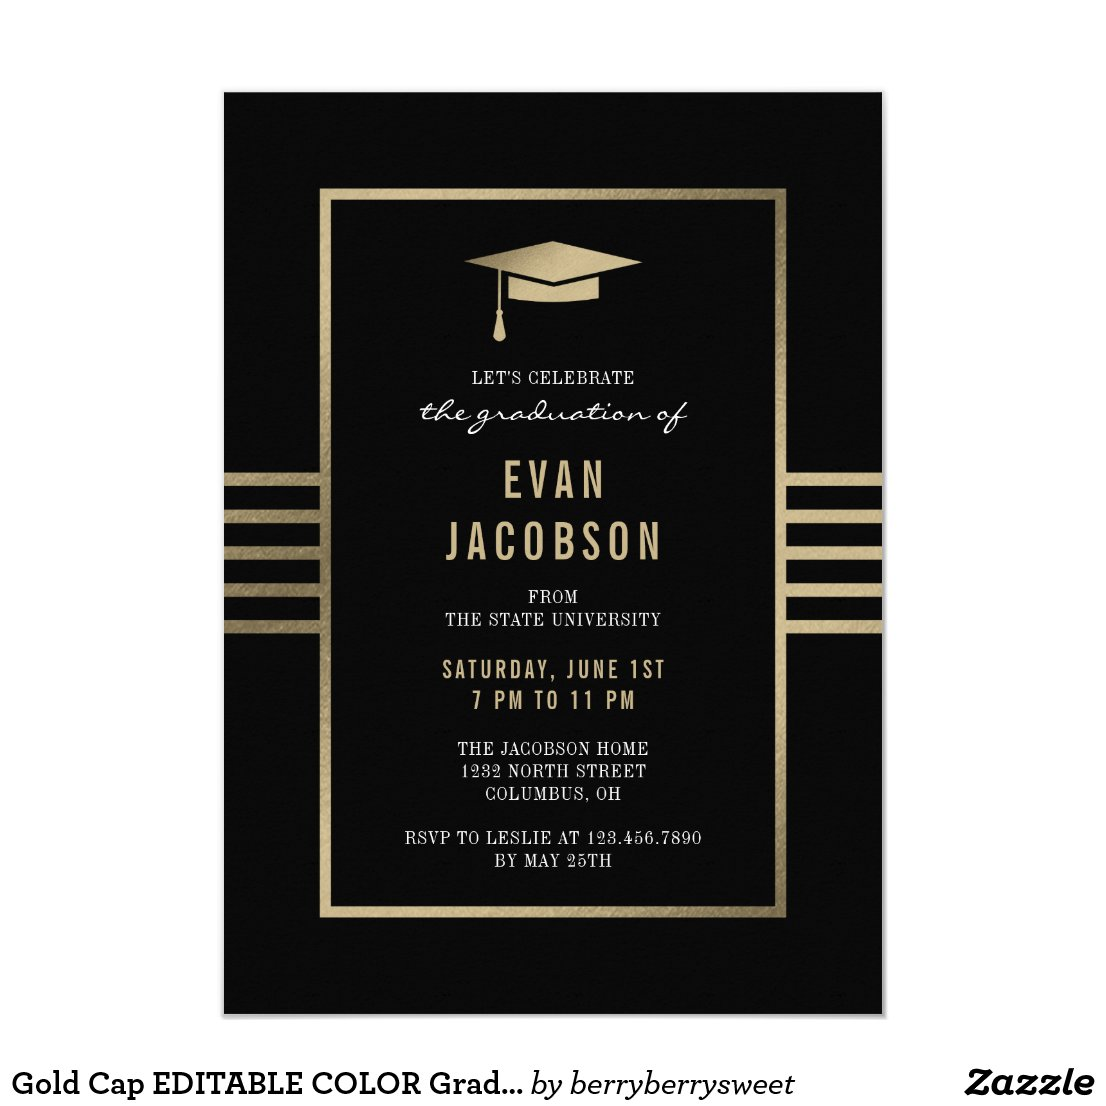 Gold Cap EDITABLE COLOR Graduation Invitation